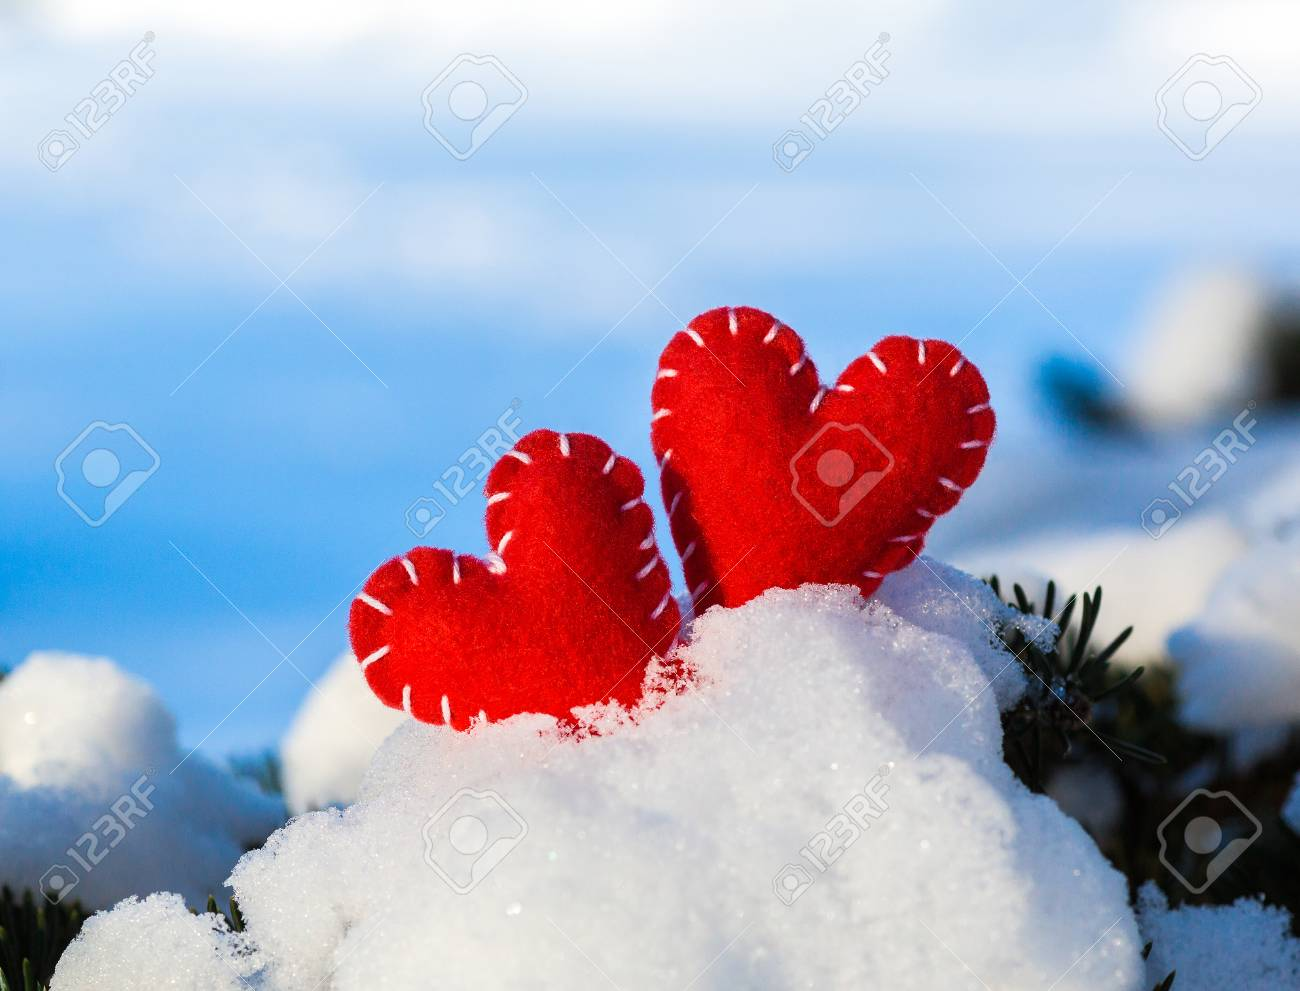 Red textile heart on fresh white snow a symbol of love red textile heart on fresh white snow a symbol of love valentines day biocorpaavc Images